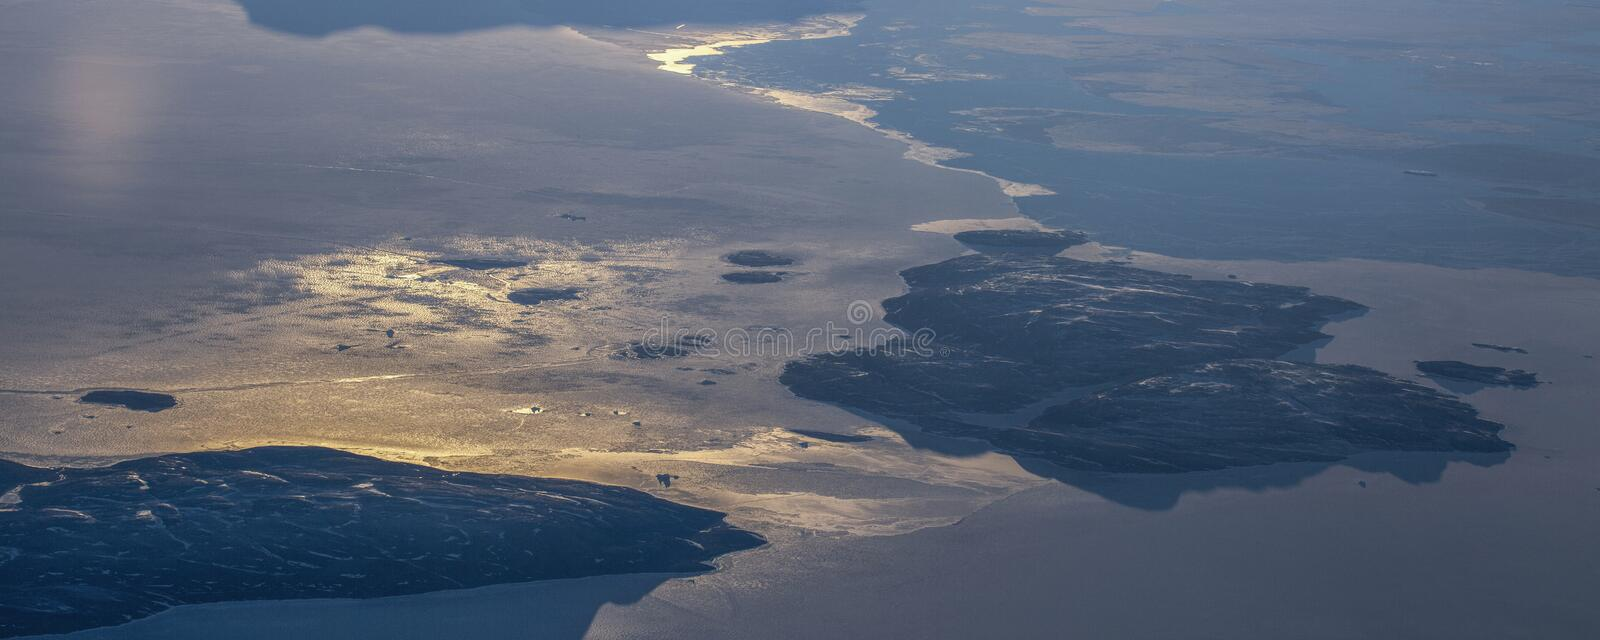 12Take an aerial view of the ice and sunrise over the bering strait.(1). The bering strait is located in the high latitudes, cold weather, many storms royalty free stock photos